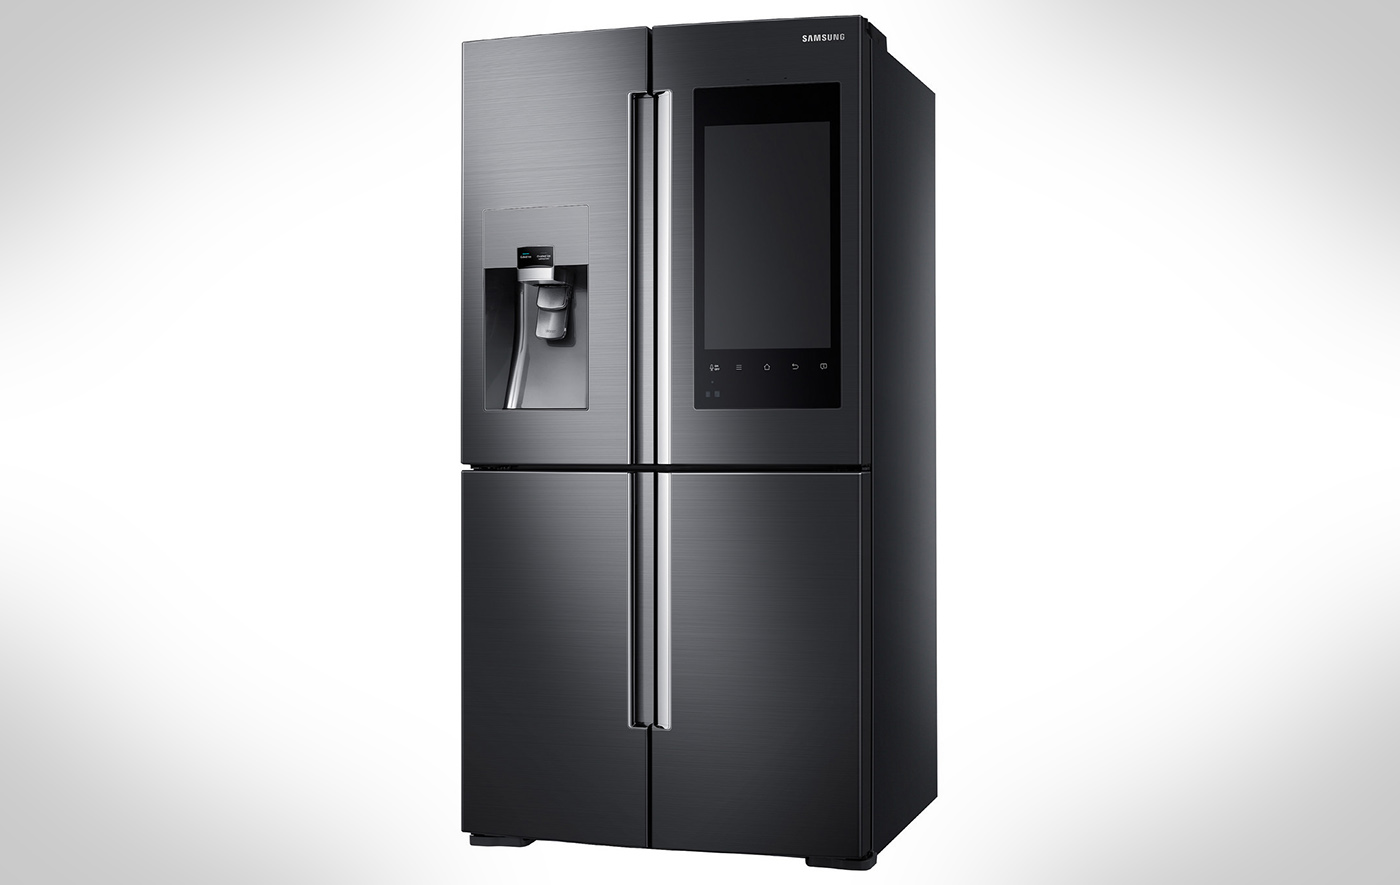 Samsung's latest smart fridge